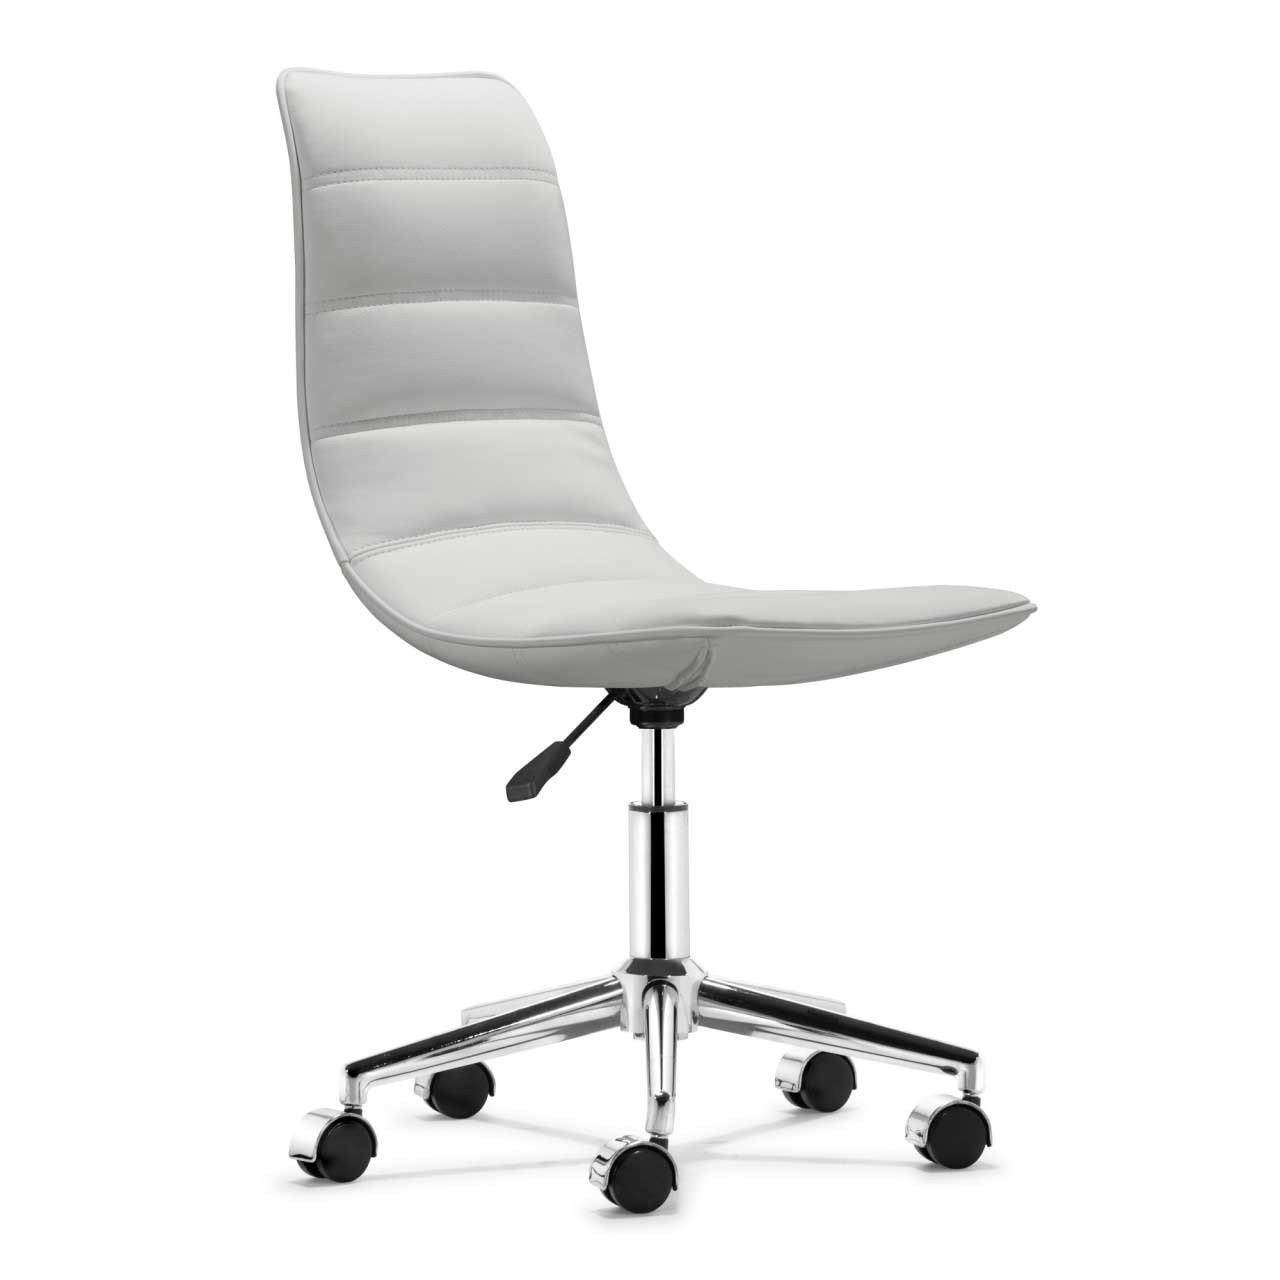 Best ideas about Office Chair Sale . Save or Pin Armless leather office chairs white office chair sale Now.